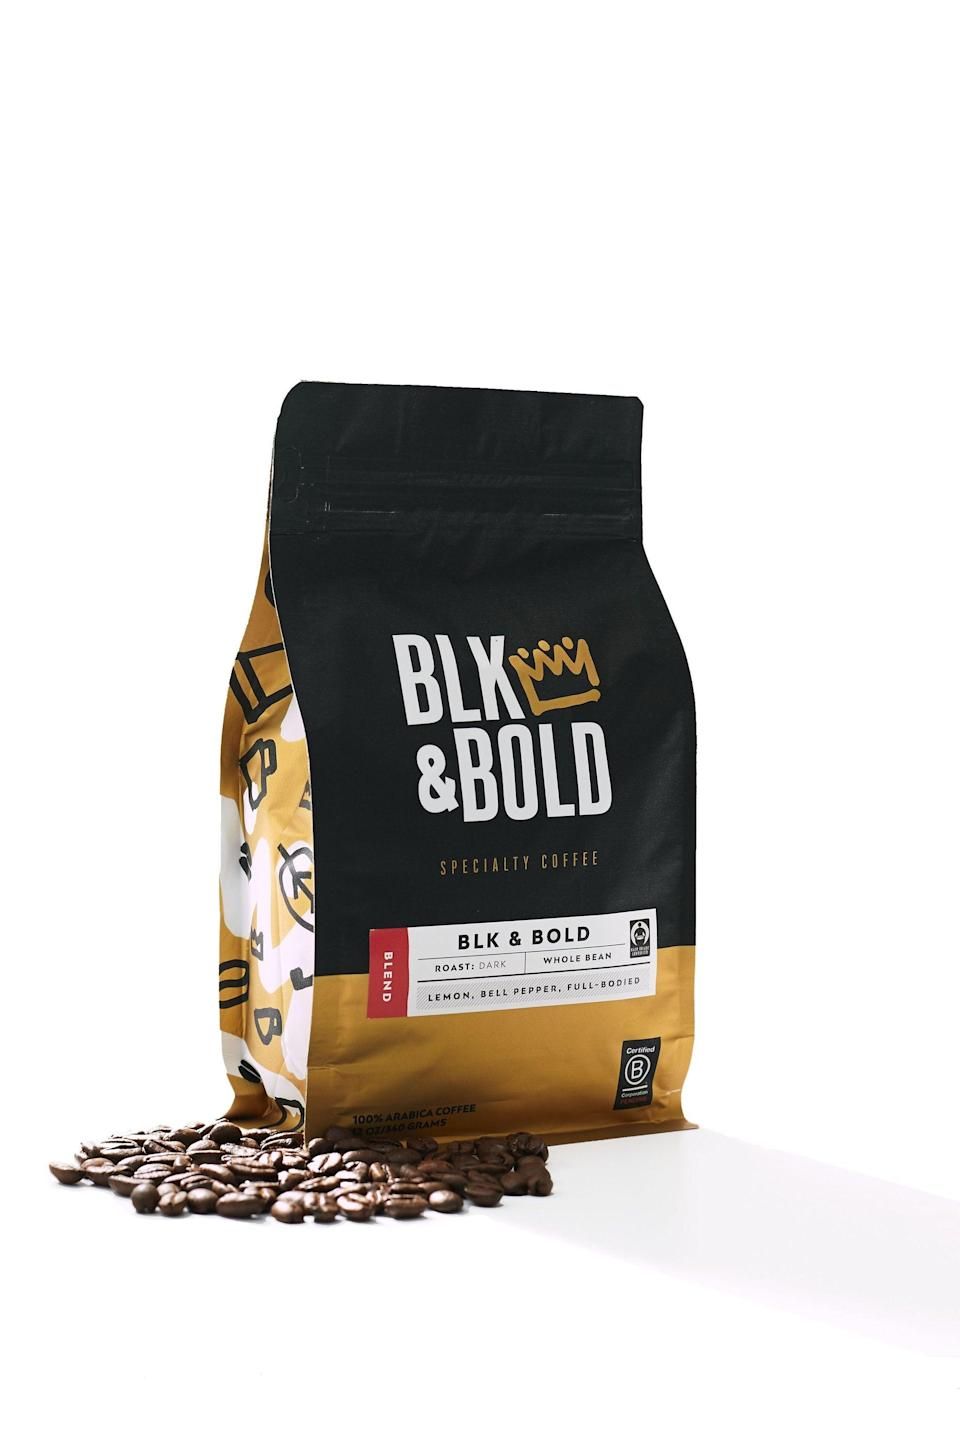 """<h3><h2>BLK & Bold</h2></h3><br><strong>Coffee & Tea Subscription</strong><br>If your dad runs on java, then surprise him with an honorary coffee (or tea) delivery with a cause — this <a href=""""https://blkandbold.com/pages/a-little-about-us"""" rel=""""nofollow noopener"""" target=""""_blank"""" data-ylk=""""slk:Black-founded and run business pledges 5% of all its proceeds"""" class=""""link rapid-noclick-resp"""">Black-founded and run business pledges 5% of all its proceeds </a>to initiatives that support at-risk youth programming to workforce development as well as eradicating youth homelessness. In addition to curating one-off care packages, BLK & Bold also offers a """"<a href=""""https://blkandbold.com/pages/subscription"""" rel=""""nofollow noopener"""" target=""""_blank"""" data-ylk=""""slk:Subscribe & Save"""" class=""""link rapid-noclick-resp"""">Subscribe & Save</a>"""" option that allows dad to automatically receive his coffee or tea gift on future dates and frequencies of his choosing. <br><br><em>Shop <strong><a href=""""https://blkandbold.com/"""" rel=""""nofollow noopener"""" target=""""_blank"""" data-ylk=""""slk:BLK & Bold"""" class=""""link rapid-noclick-resp"""">BLK & Bold</a></strong></em><br><br><strong>BLK & Bold</strong> The Warm Up: Western Conference, $, available at <a href=""""https://go.skimresources.com/?id=30283X879131&url=https%3A%2F%2Fblkandbold.com%2Fproducts%2Fthe-warm-up-western-conference"""" rel=""""nofollow noopener"""" target=""""_blank"""" data-ylk=""""slk:BLK & Bold"""" class=""""link rapid-noclick-resp"""">BLK & Bold</a>"""